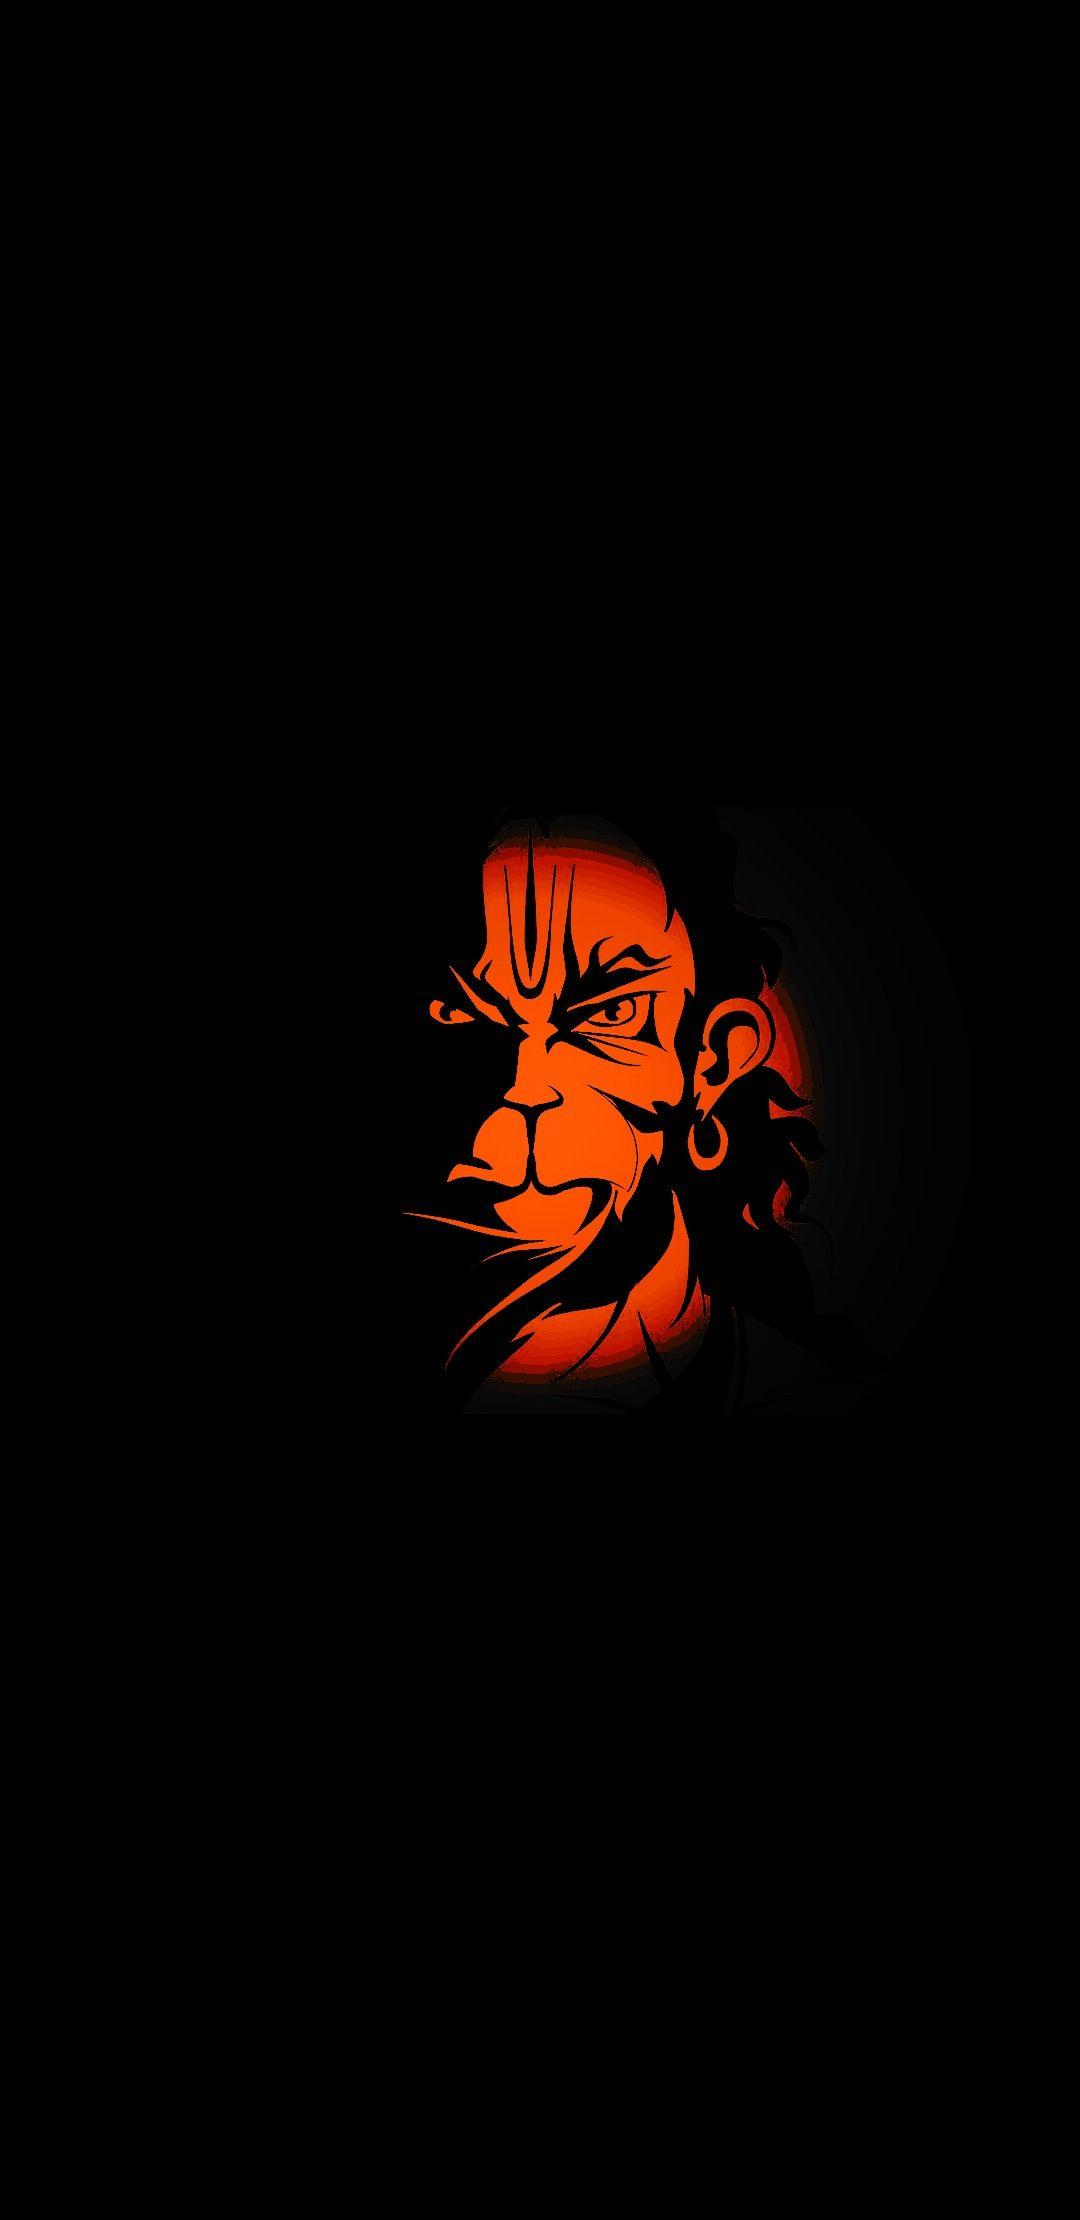 God Hanuman Hd Amoled Wallpapers Wallpaper Cave